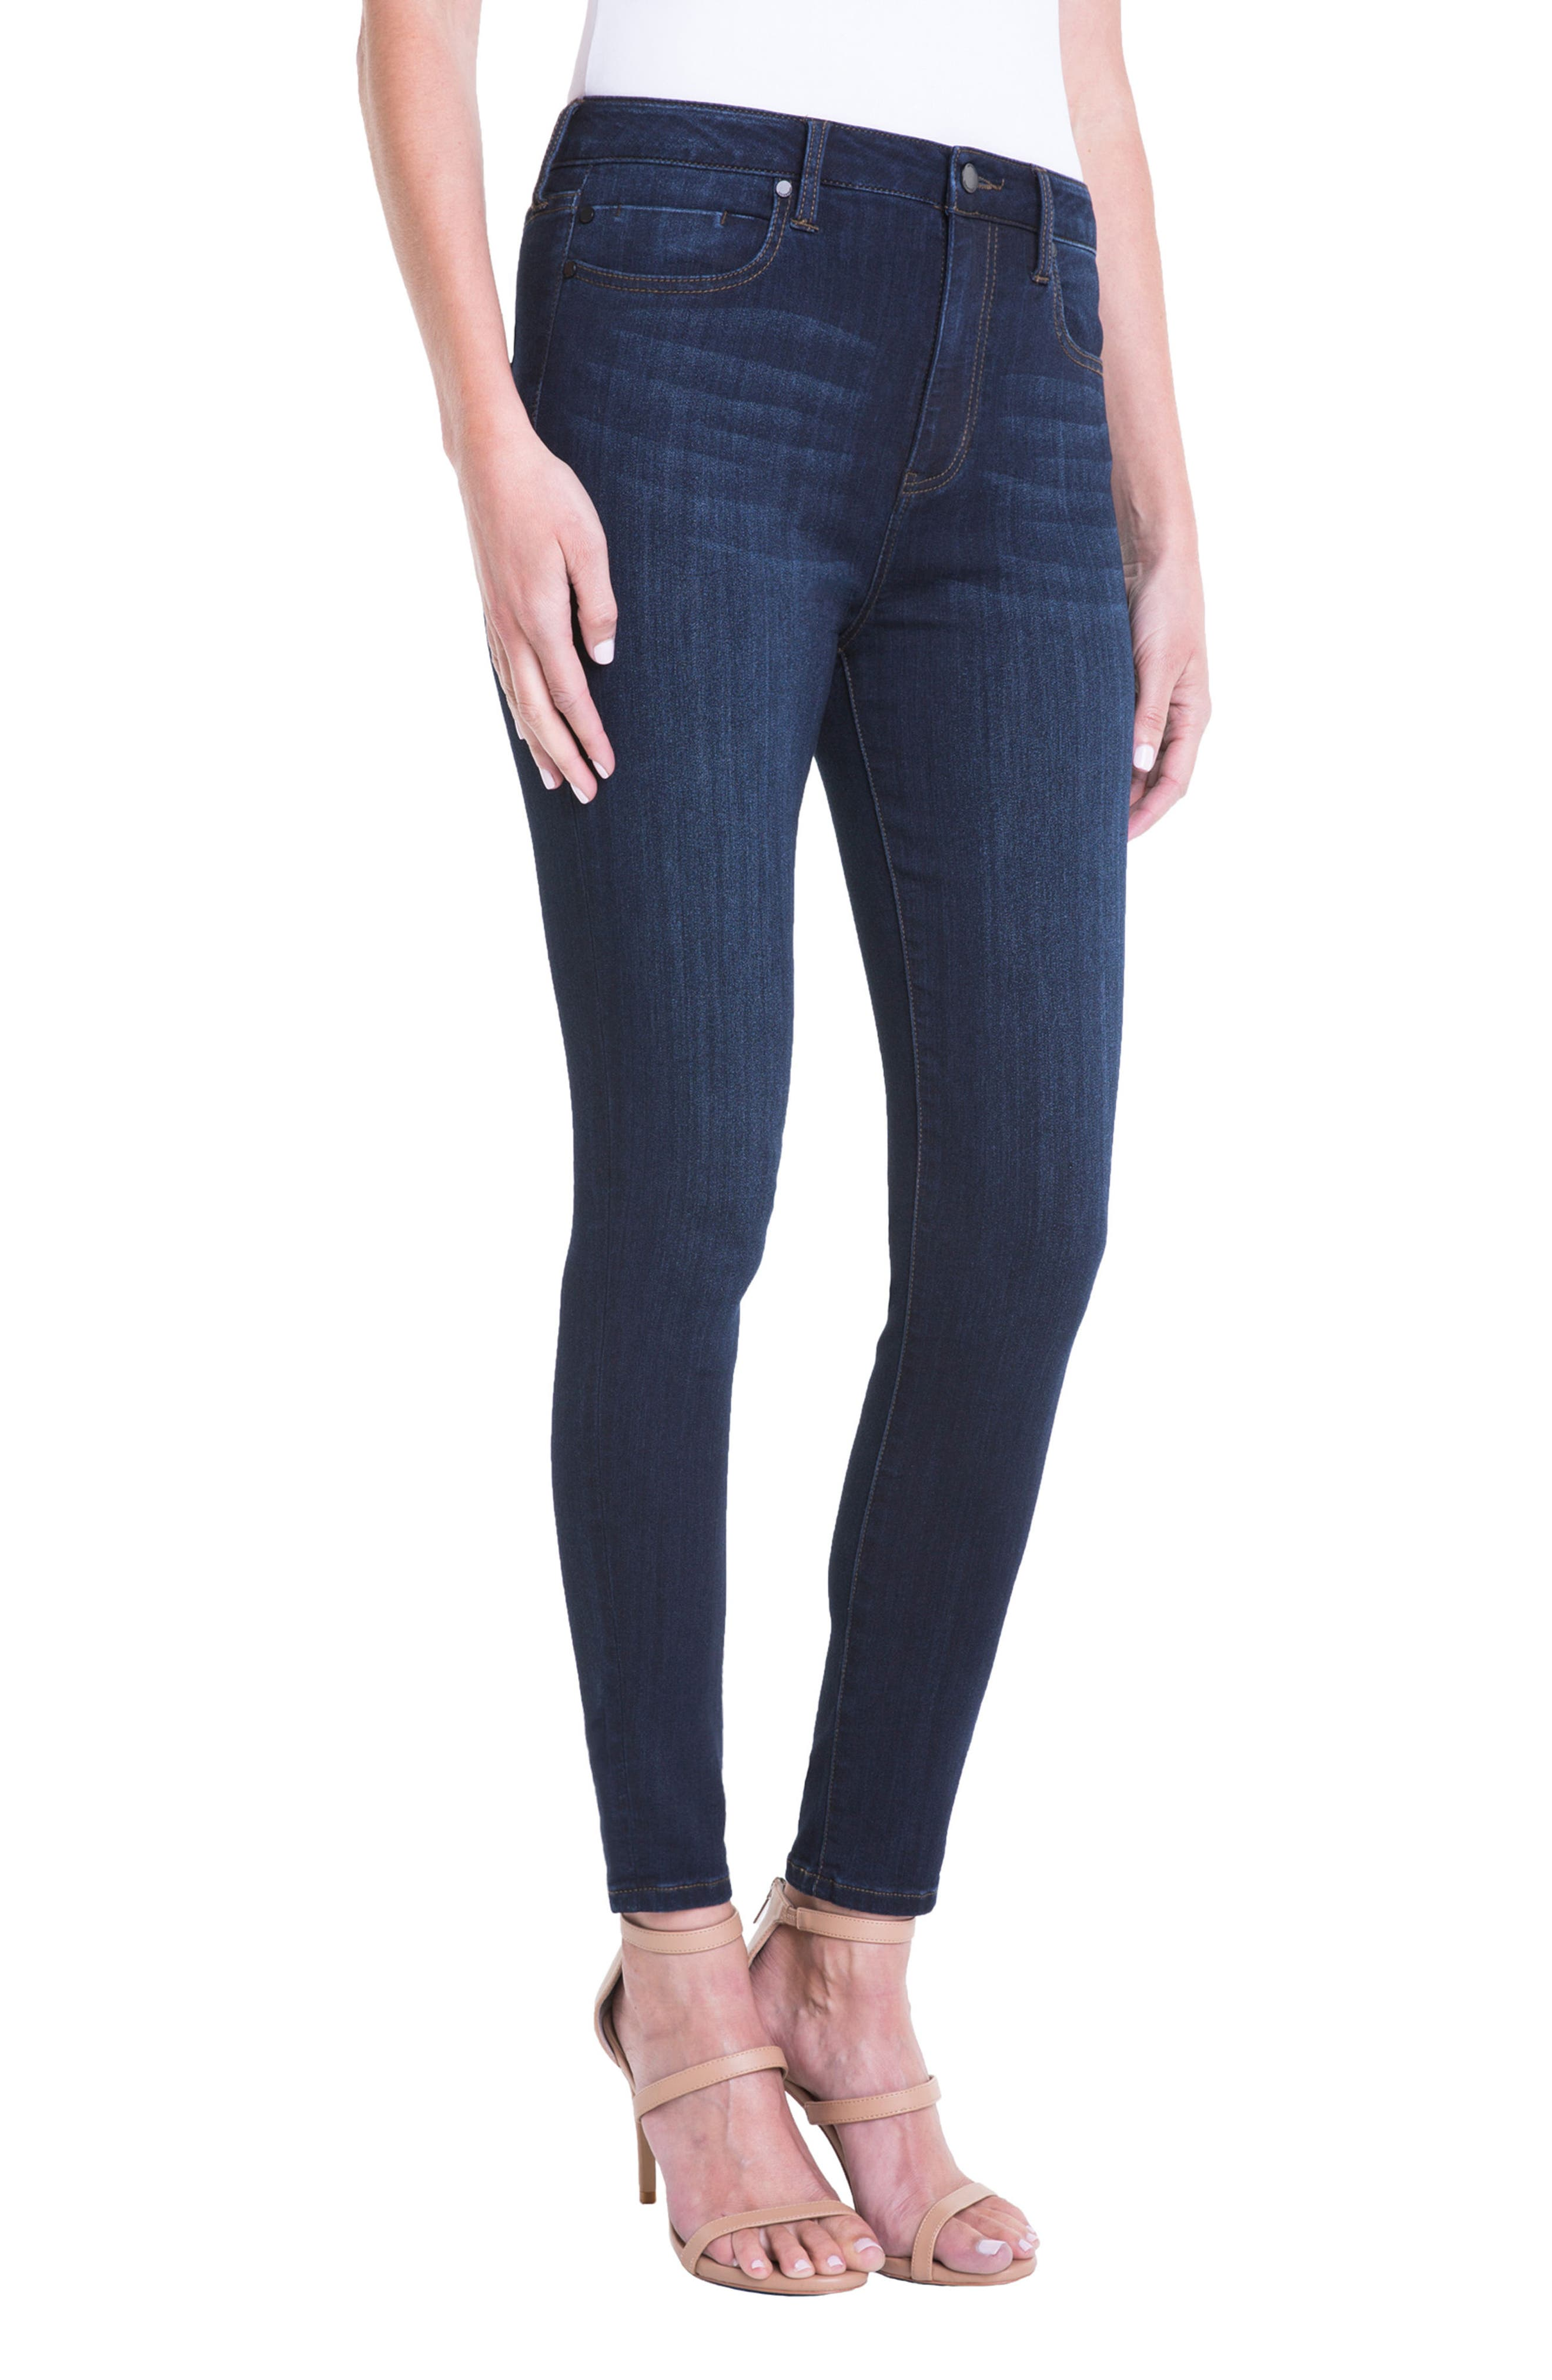 Jeans Company Bridget High Waist Skinny Jeans,                             Alternate thumbnail 11, color,